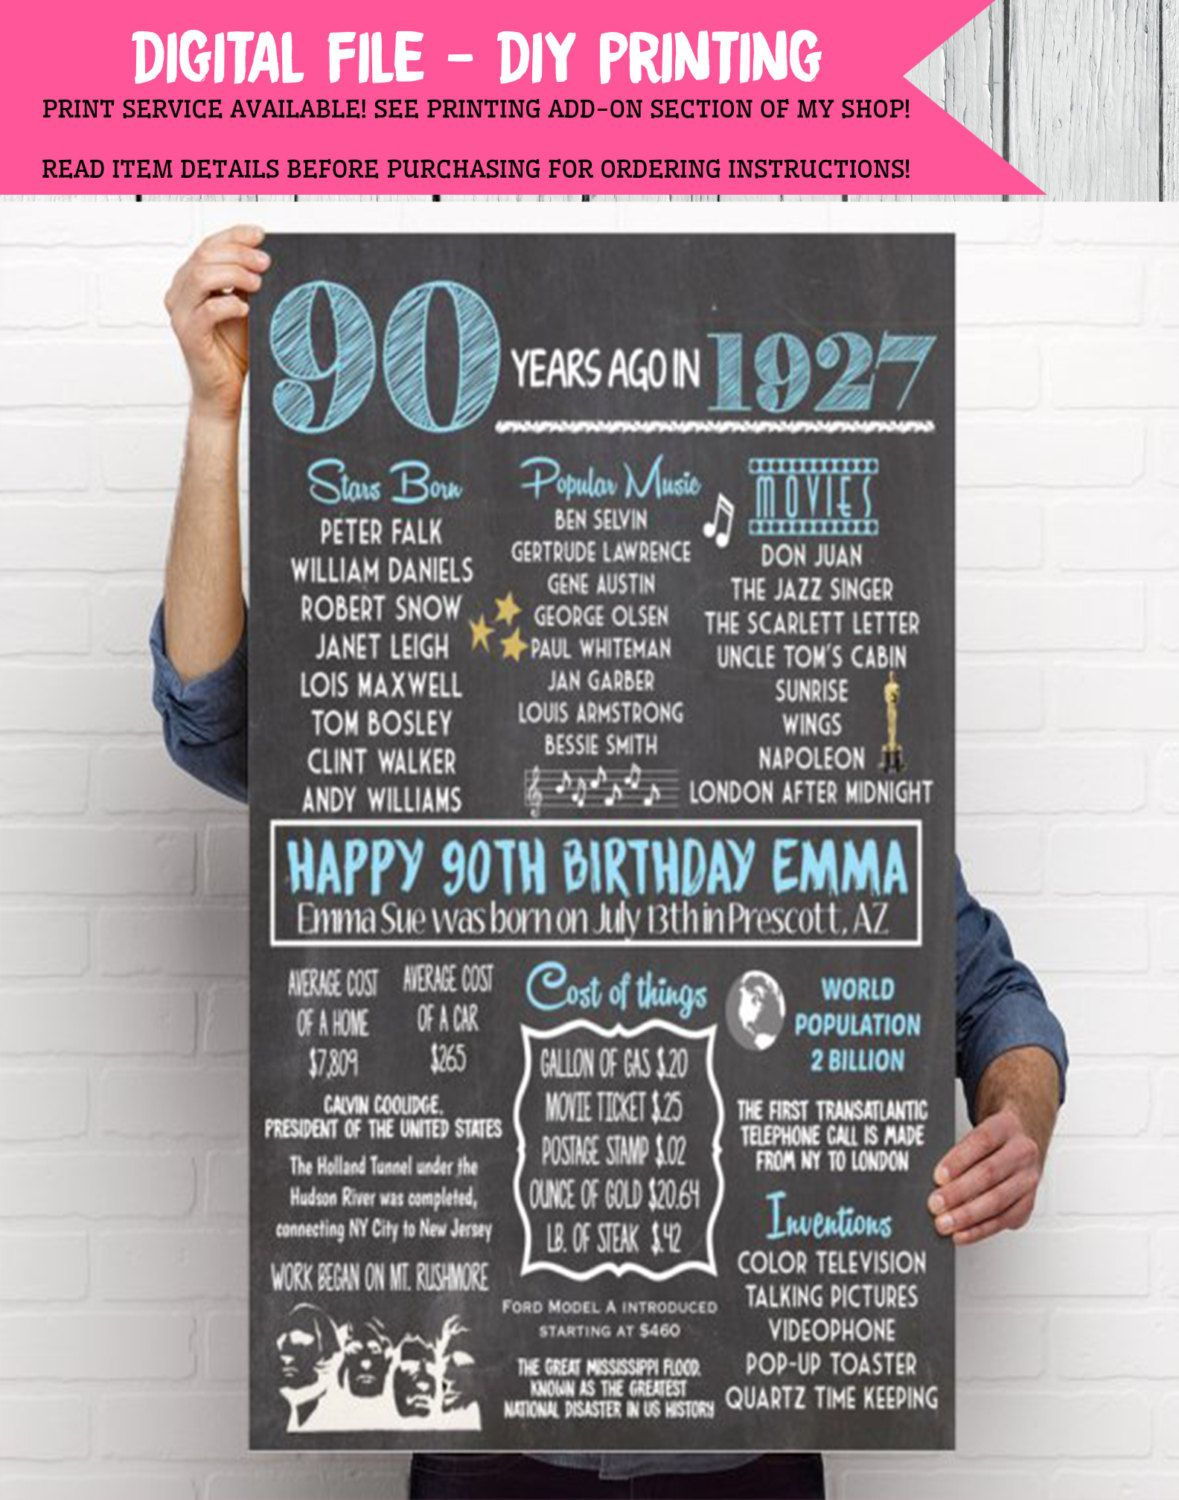 1927 90th Decor Personalized Birthday Chalkboard Sign Digital File DIY Printing 01 By EmmaSueBowtique On Etsy